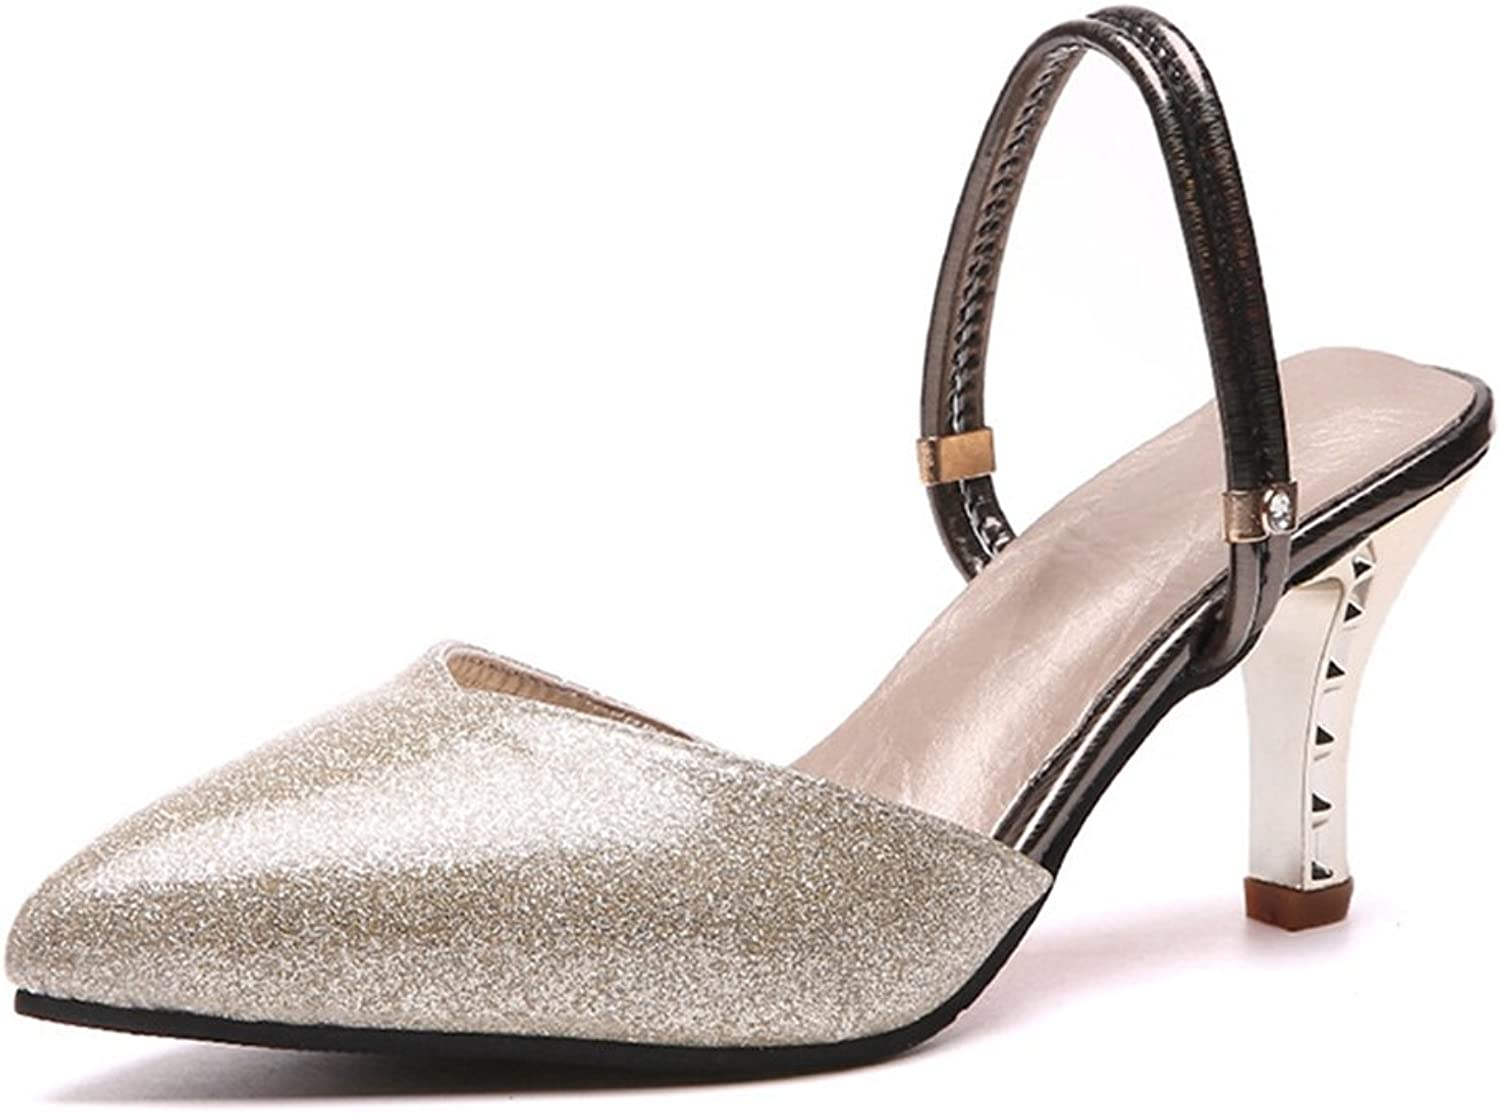 T-JULY Womens Ladies Fashion Sparkle Glitter Heels Pointed Toe Pumps Chunky Heel Slip on Sex Comfy Dress Sandals